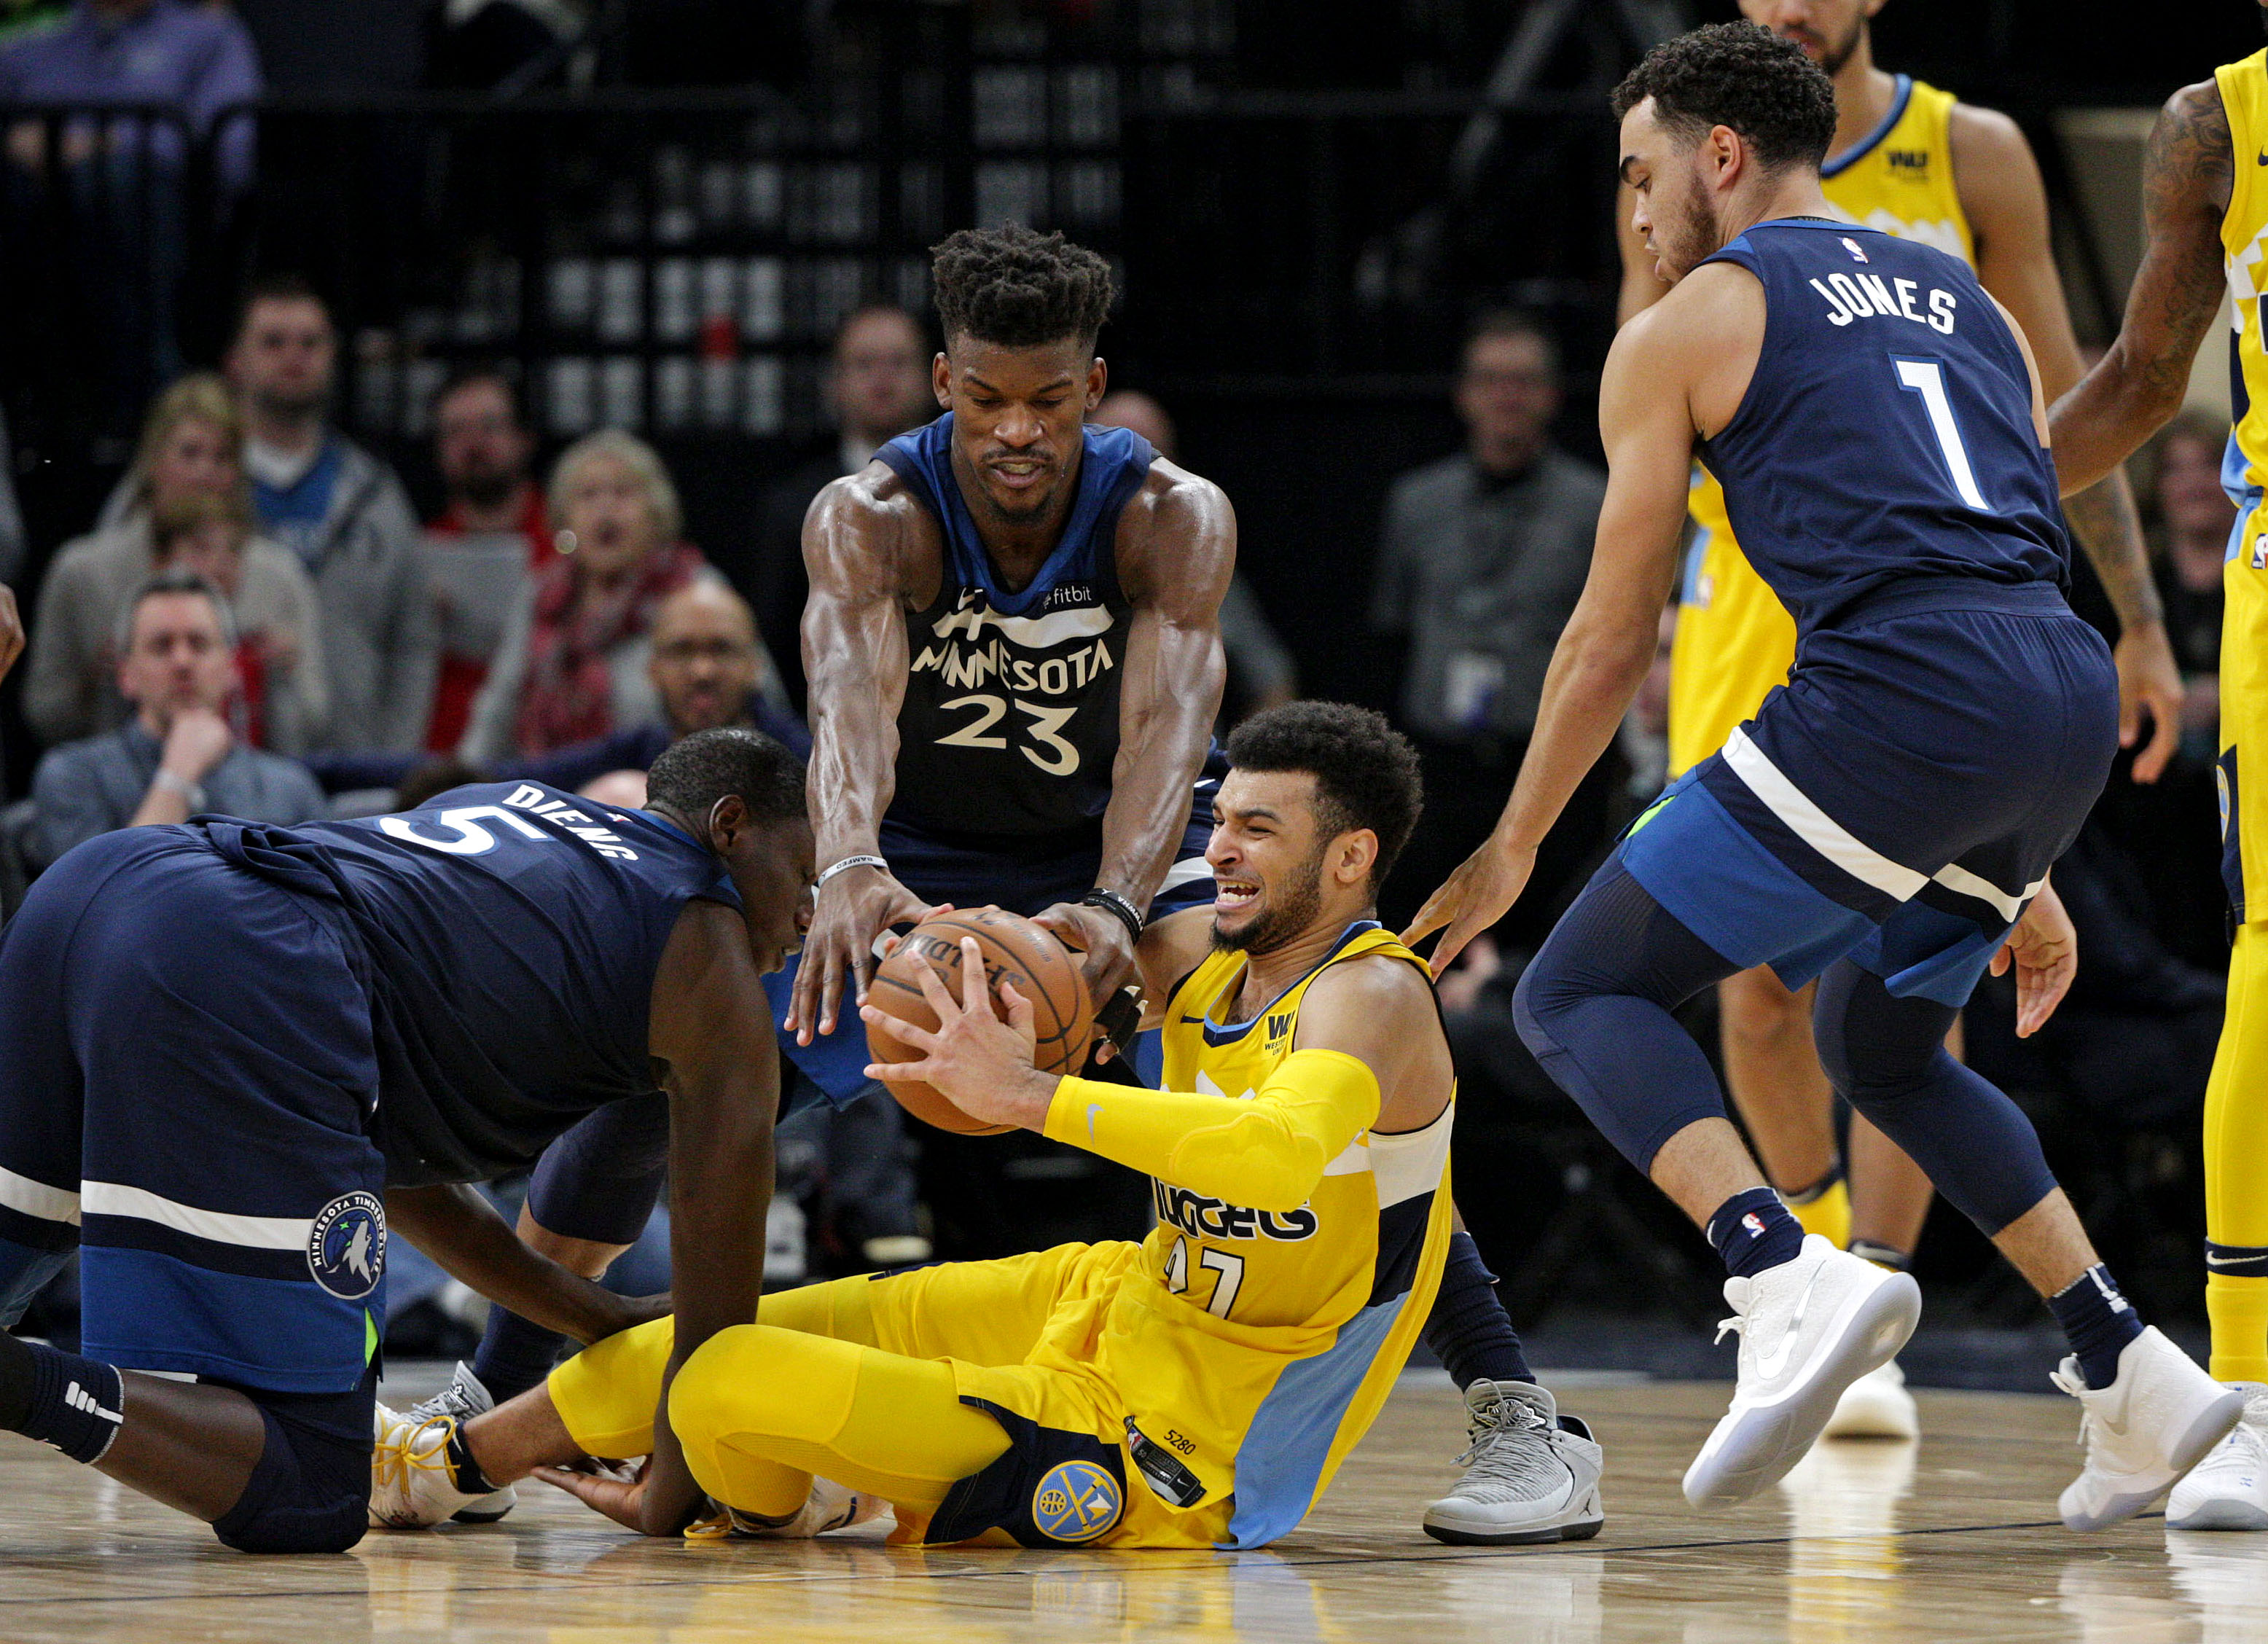 Timberwolves howl, beat Nuggets in OT to reach playoffs